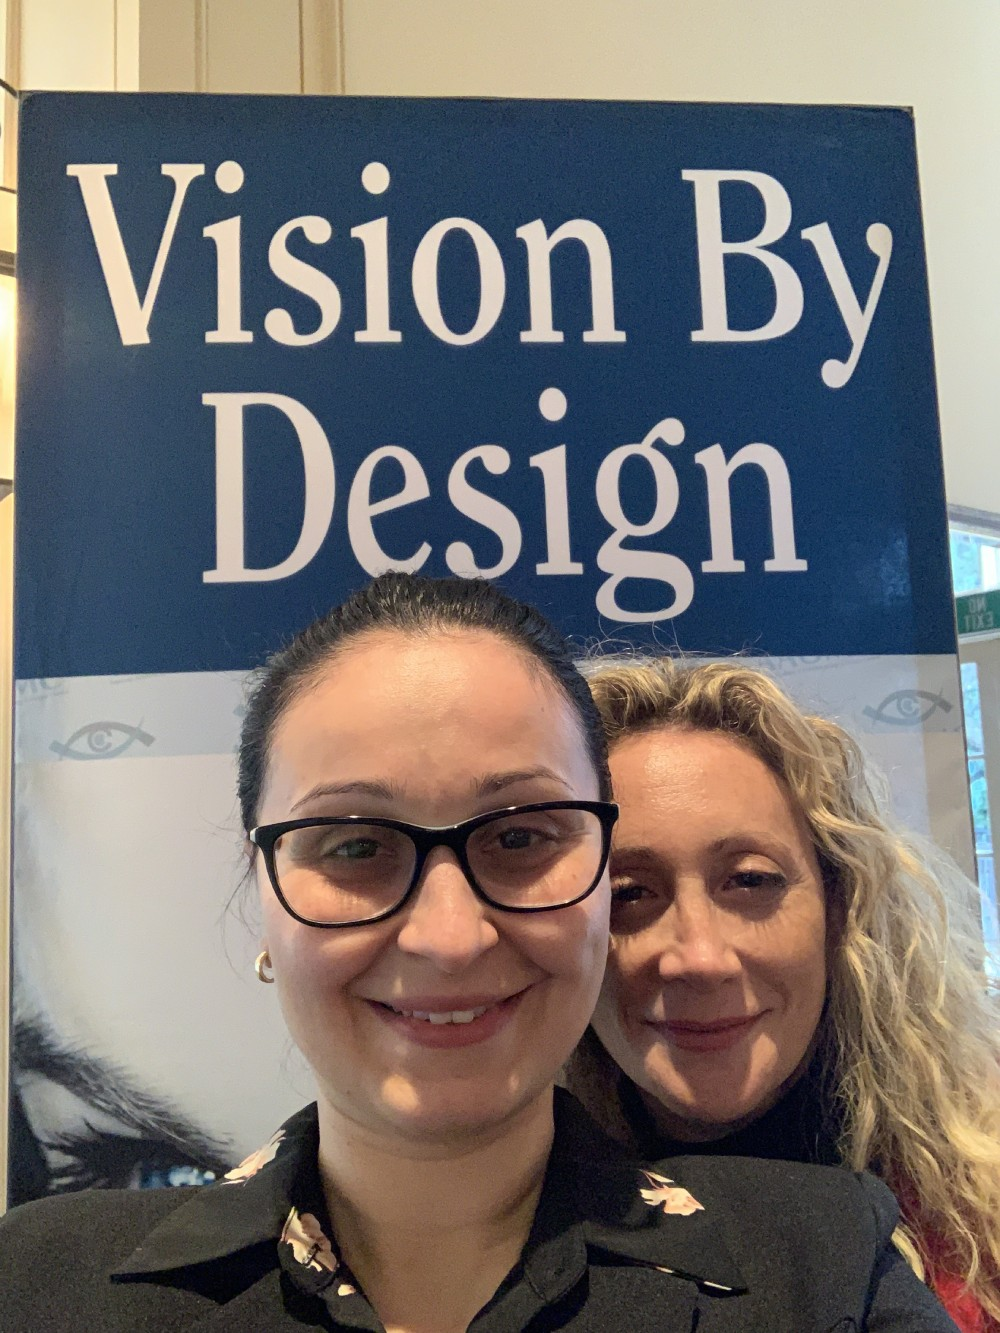 Vision By Design